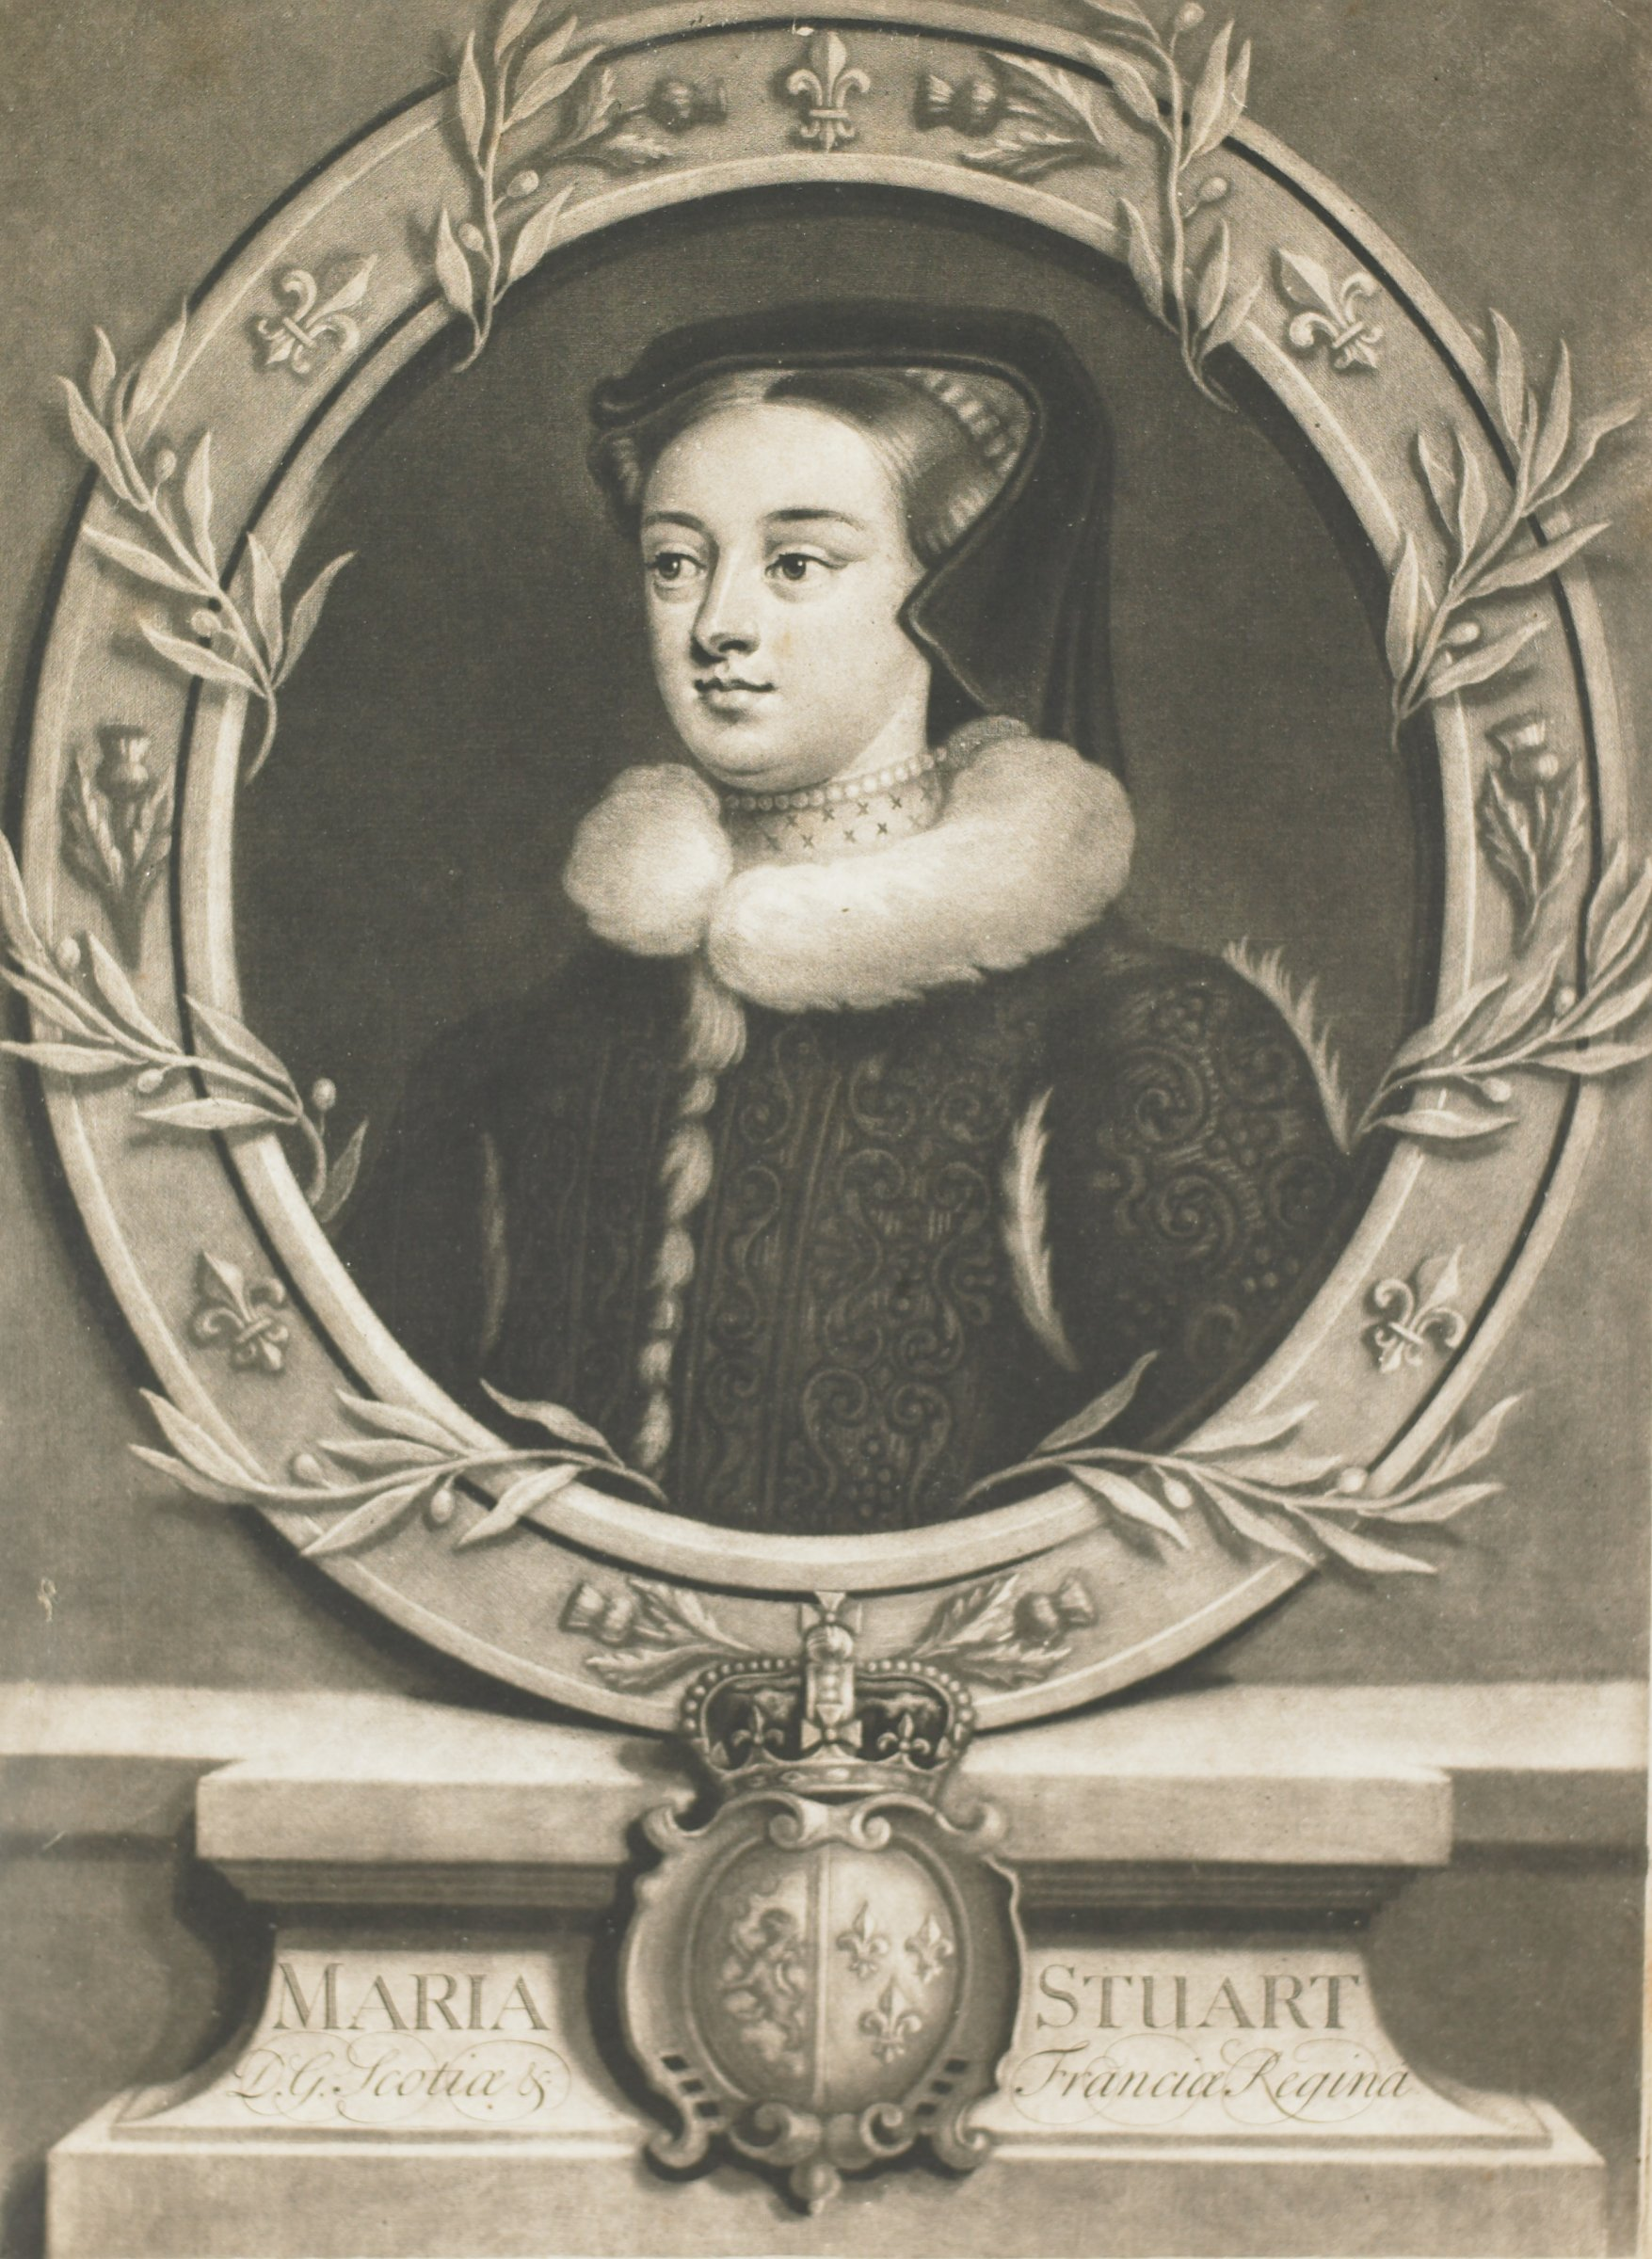 A portrait of a woman in half view. She is turned slightly to the left. She is surrounded by an oval frame decorated with fleurs de lis and vines.  A coat of arms is seen at the bottom center.